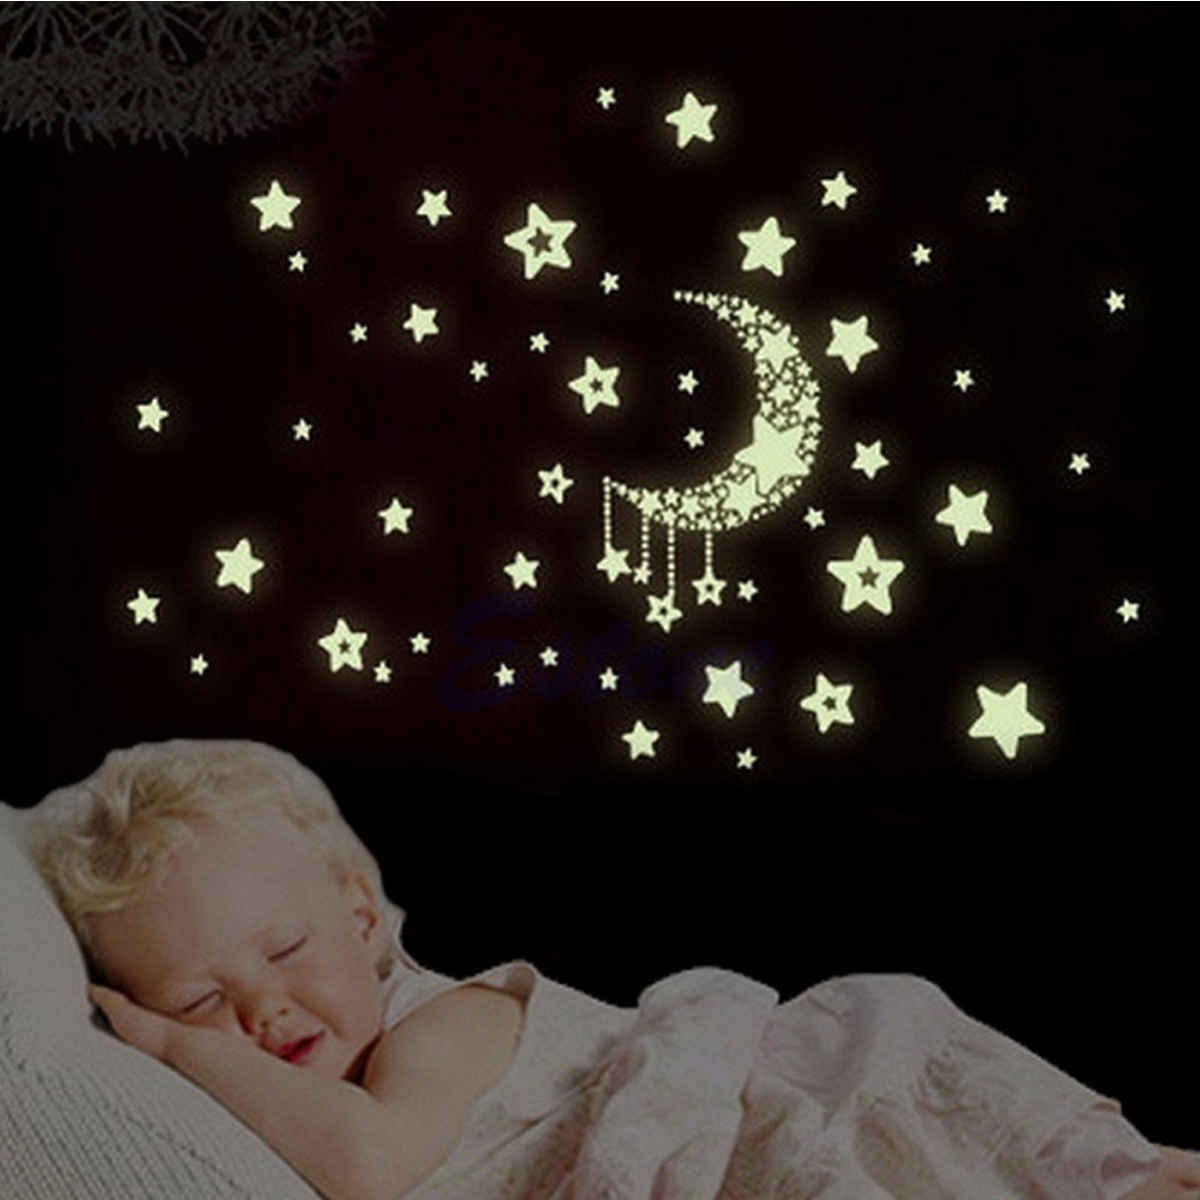 Luminous Star and Moon Creative PVC Wall Sticker Home Decor Mural Art Removable Wall Decals